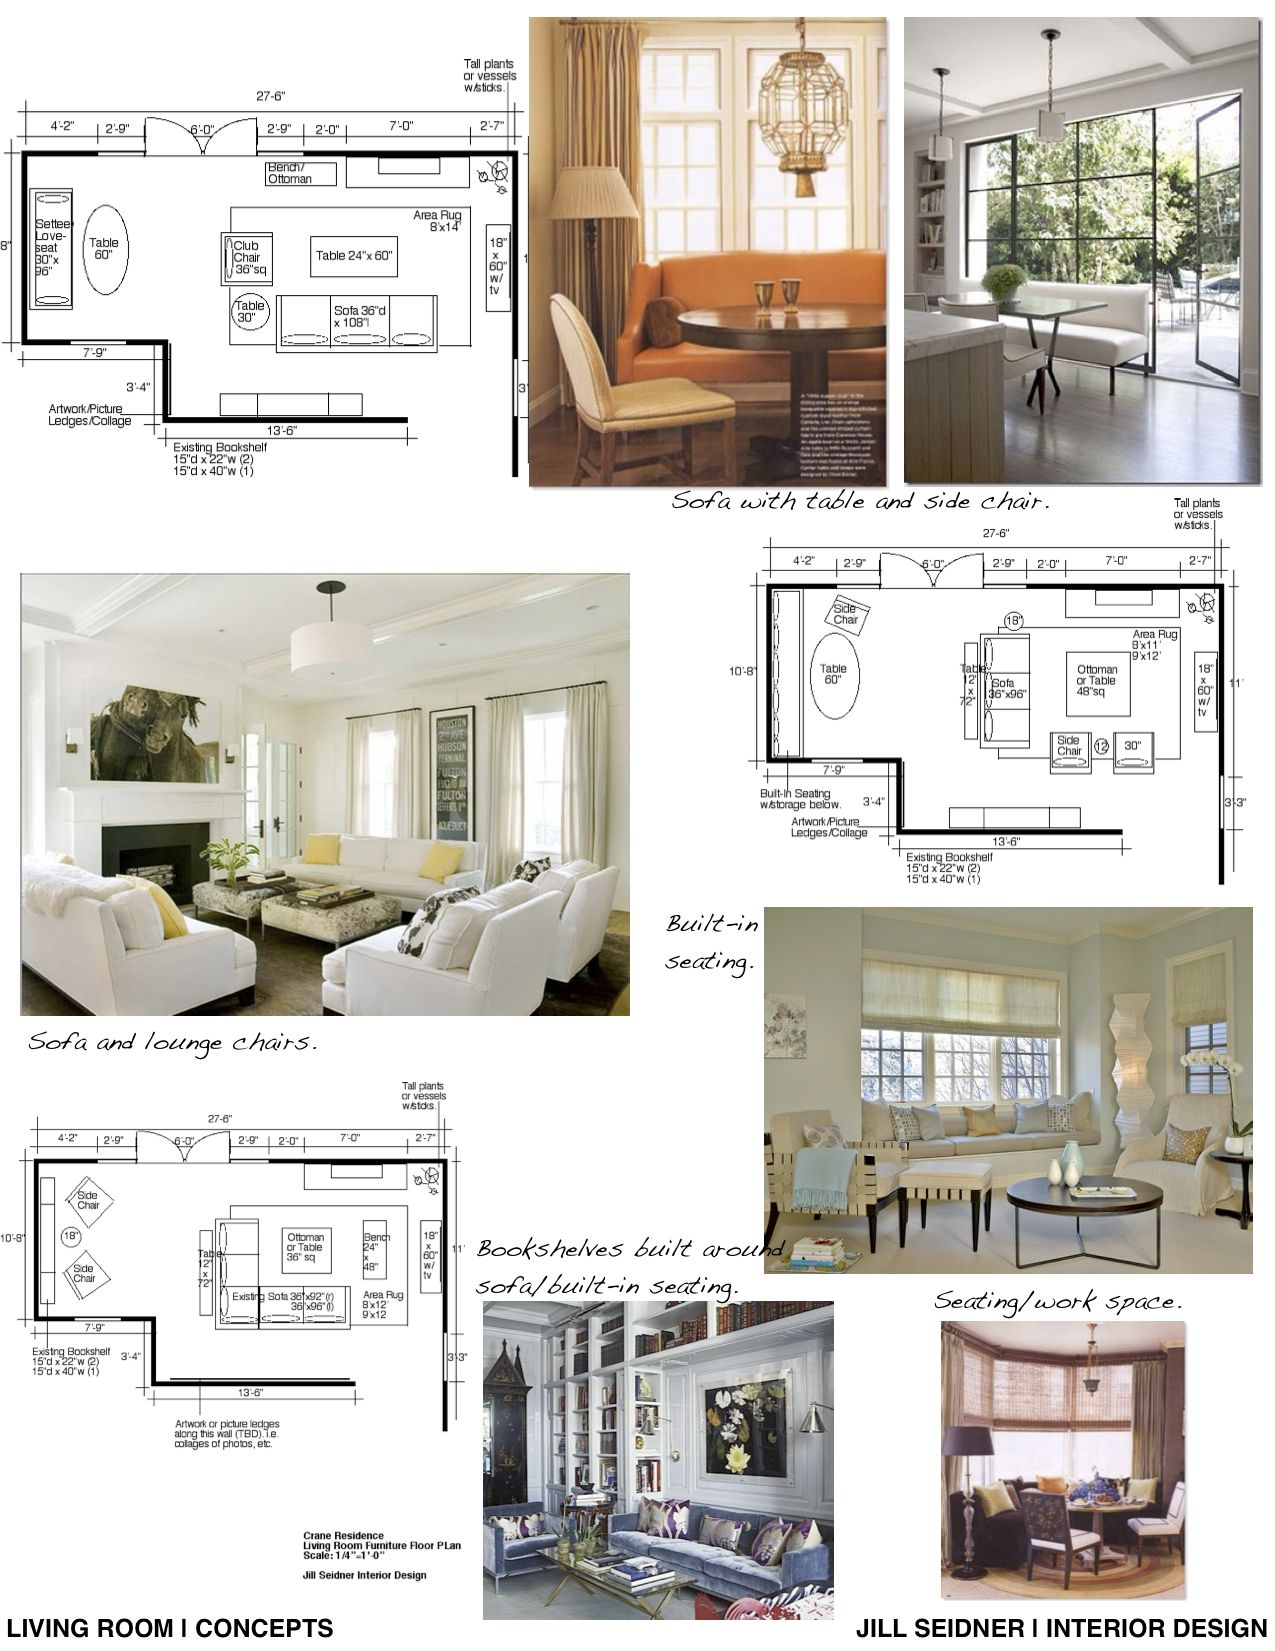 Concept Board And Furniture Layout For A Living Room With Images